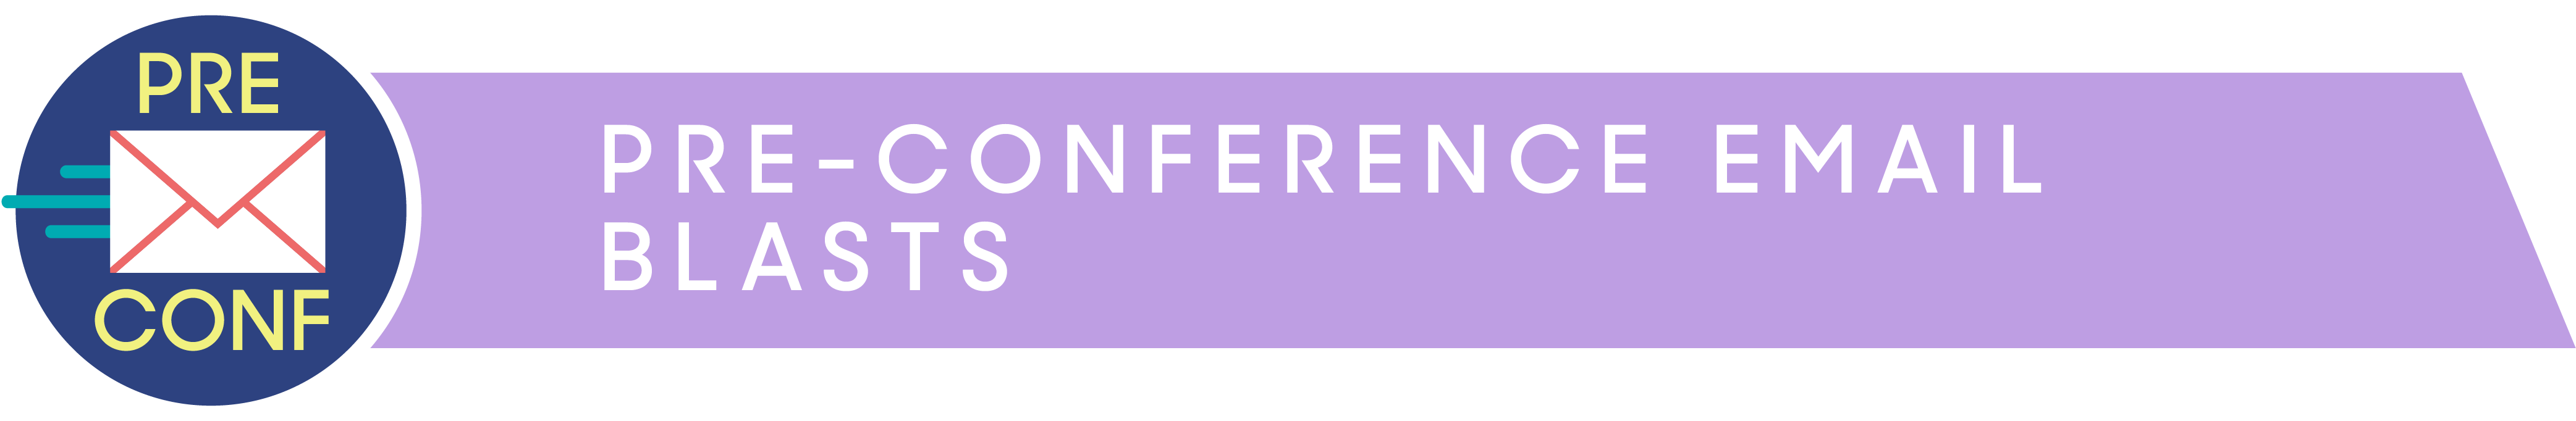 Pre-Conference Email Blasts